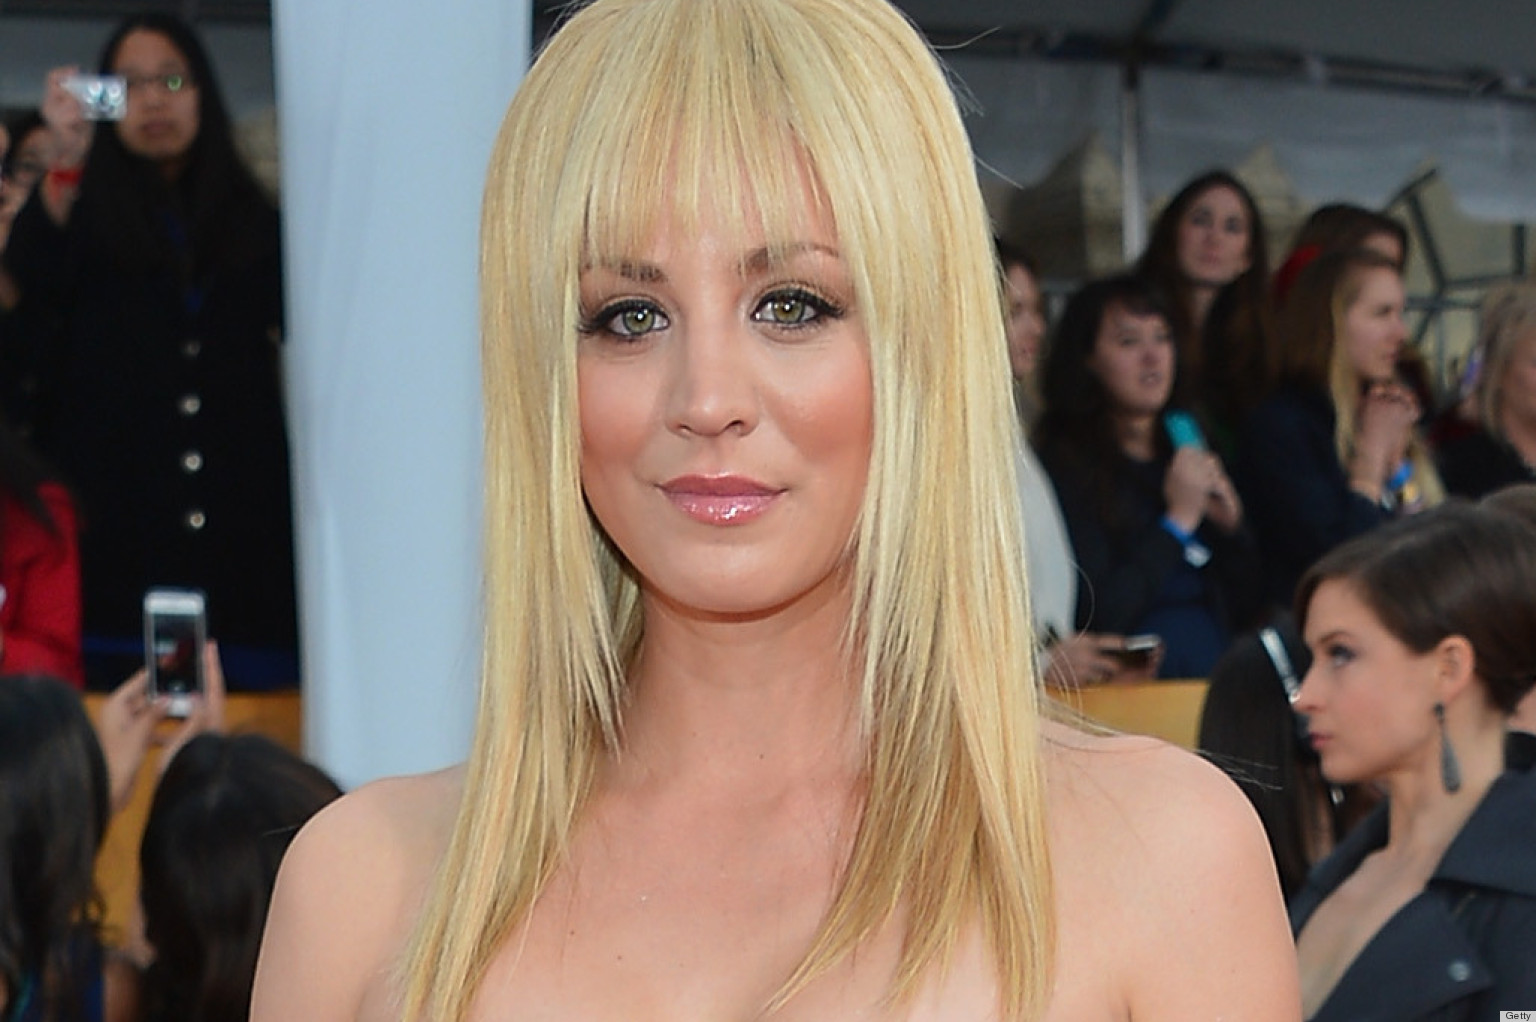 Kaley Cuocos Bangs From Sag Awards Named Bev For Some Strange